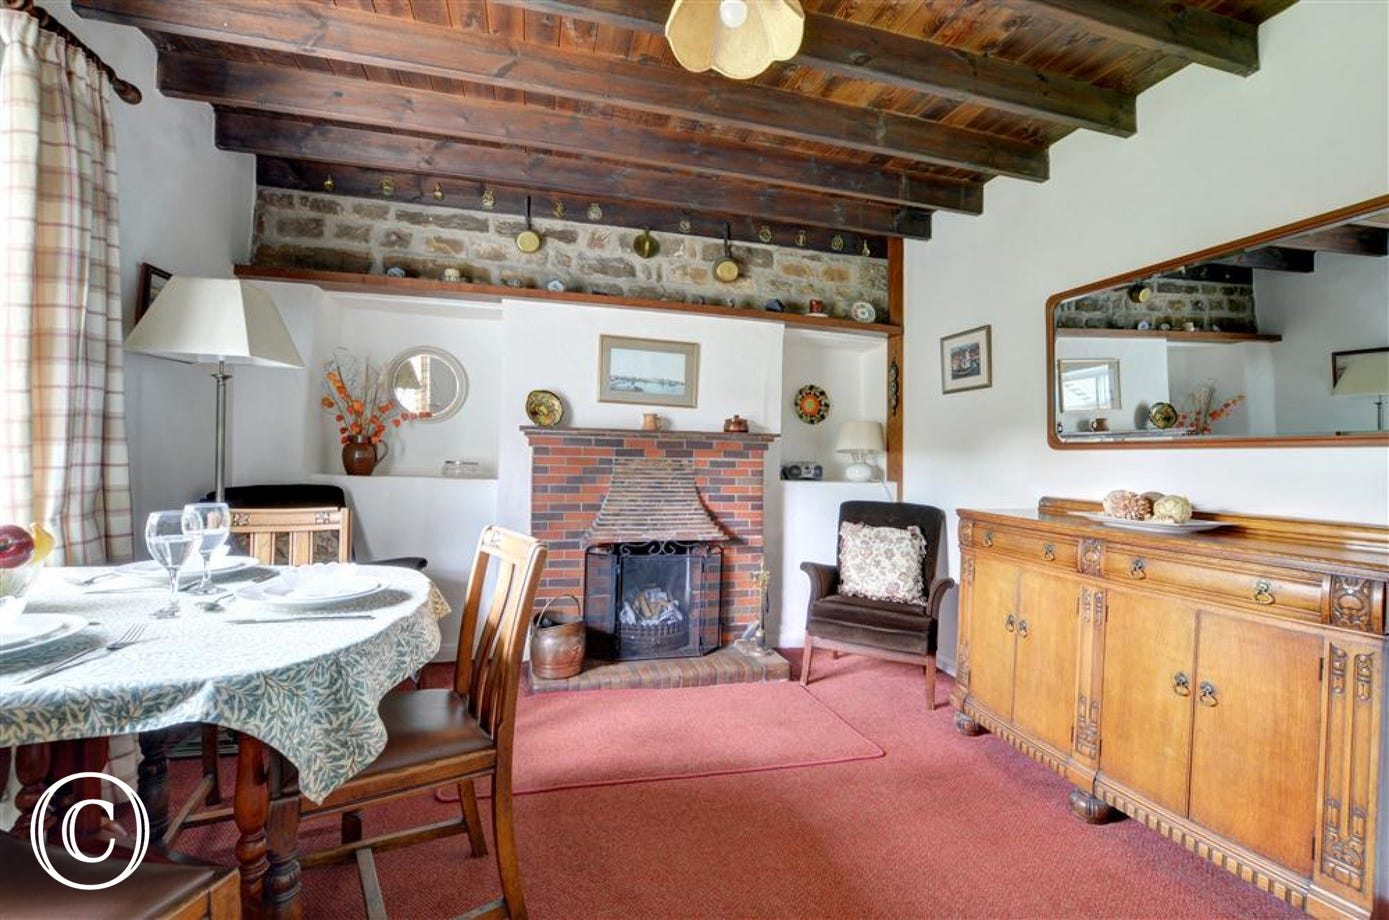 The dining room has a cosy feature fireplace.